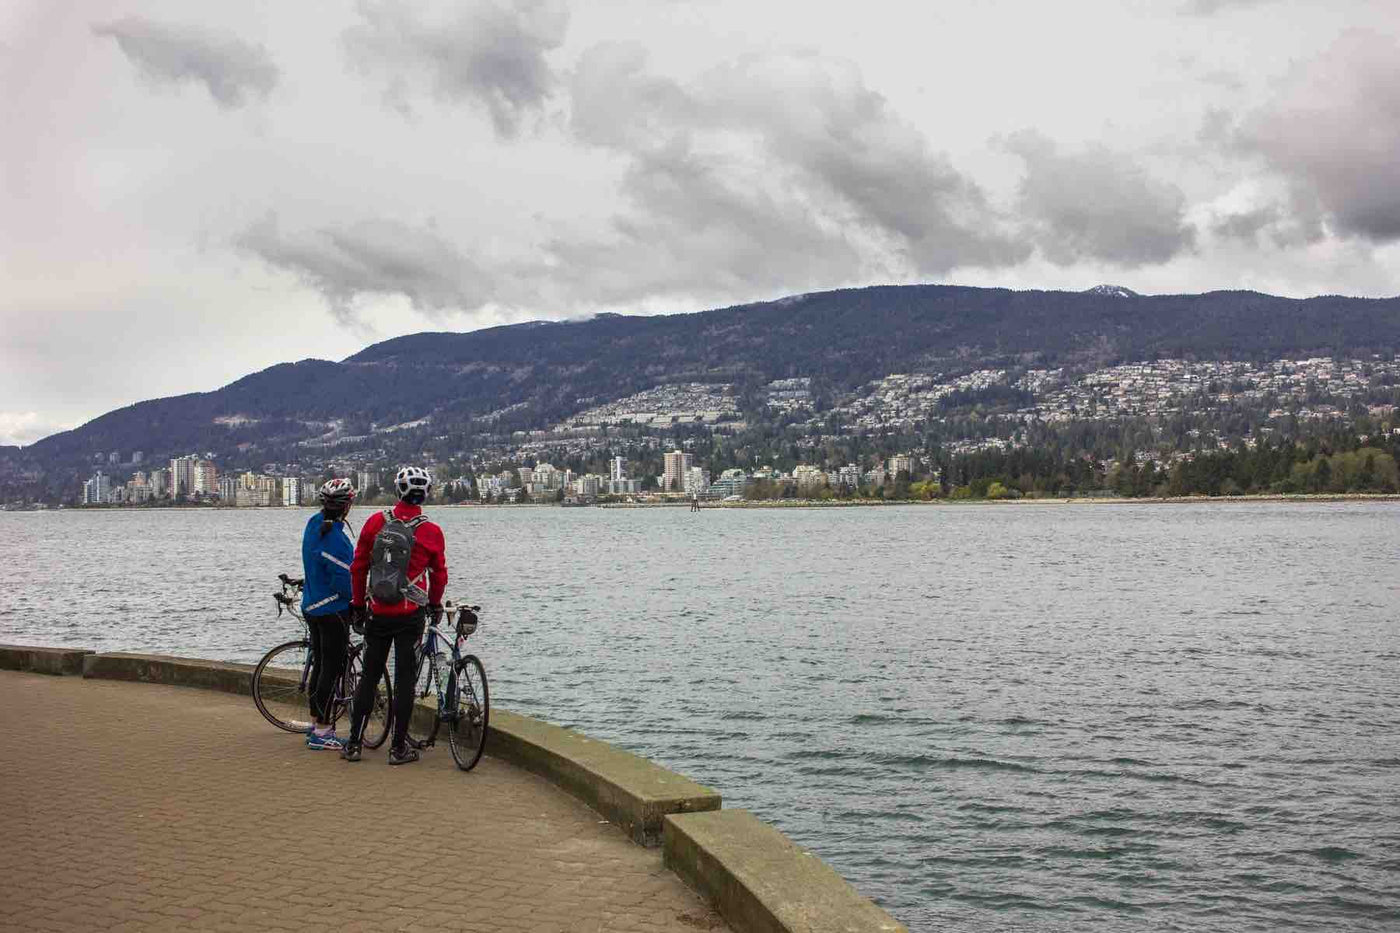 Two bike riders along a river edge enjoying the view of the water and the city skyline in the background..